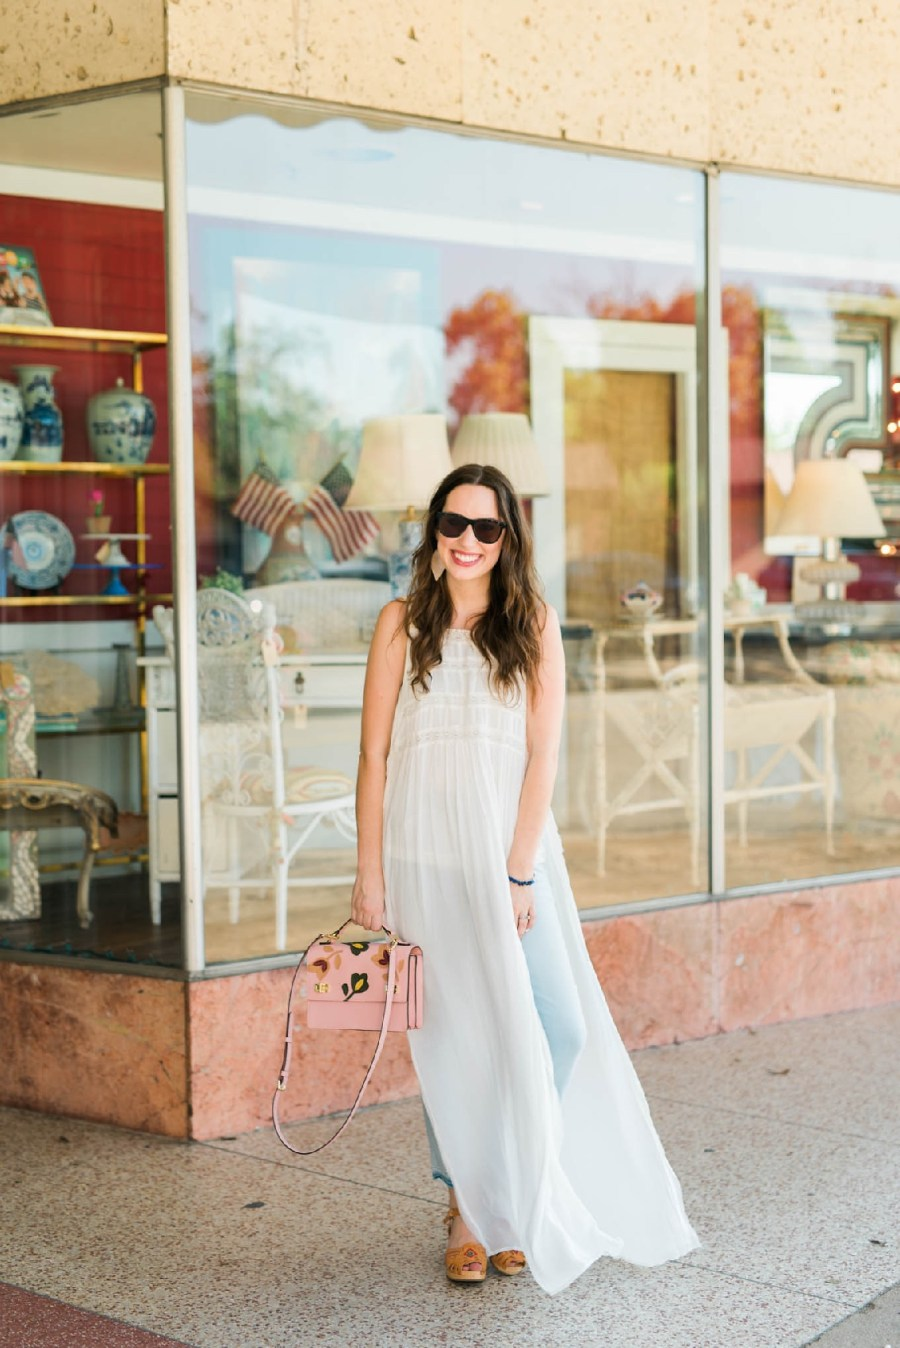 emerson rose houston heights, white linen night houston heights, henri bendel pink satchel, 19th street houston heights